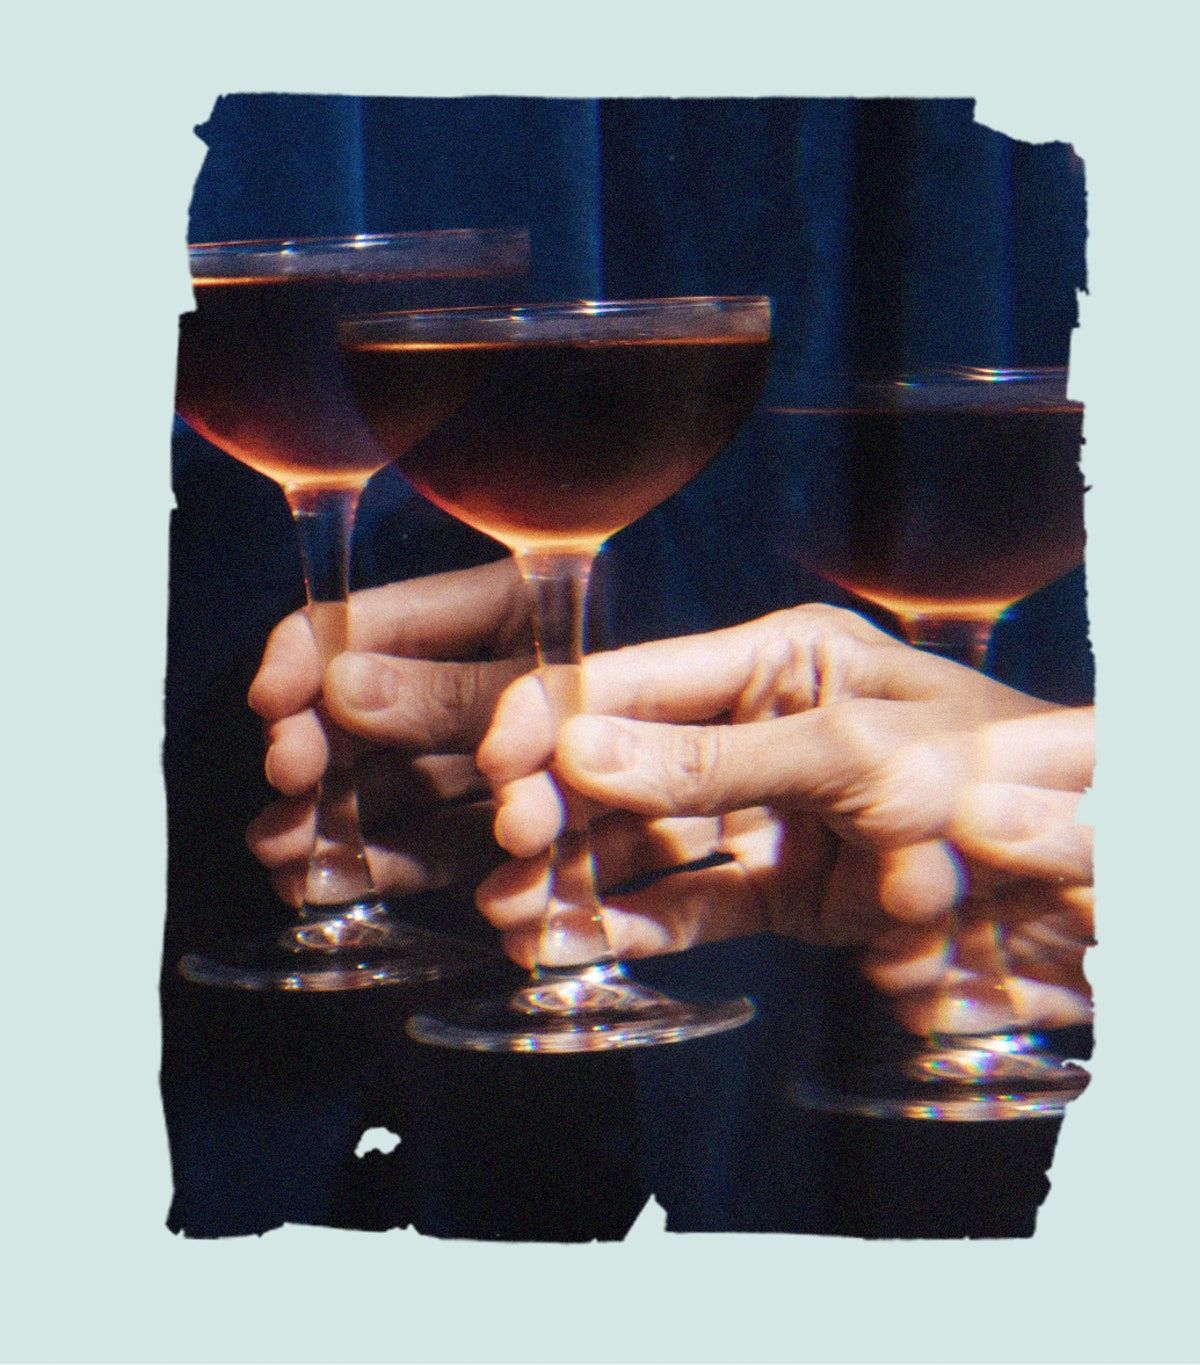 A person's hand holds up a glass of dark liqueur. Here's how Millennial women feel about sobriety in 2021.